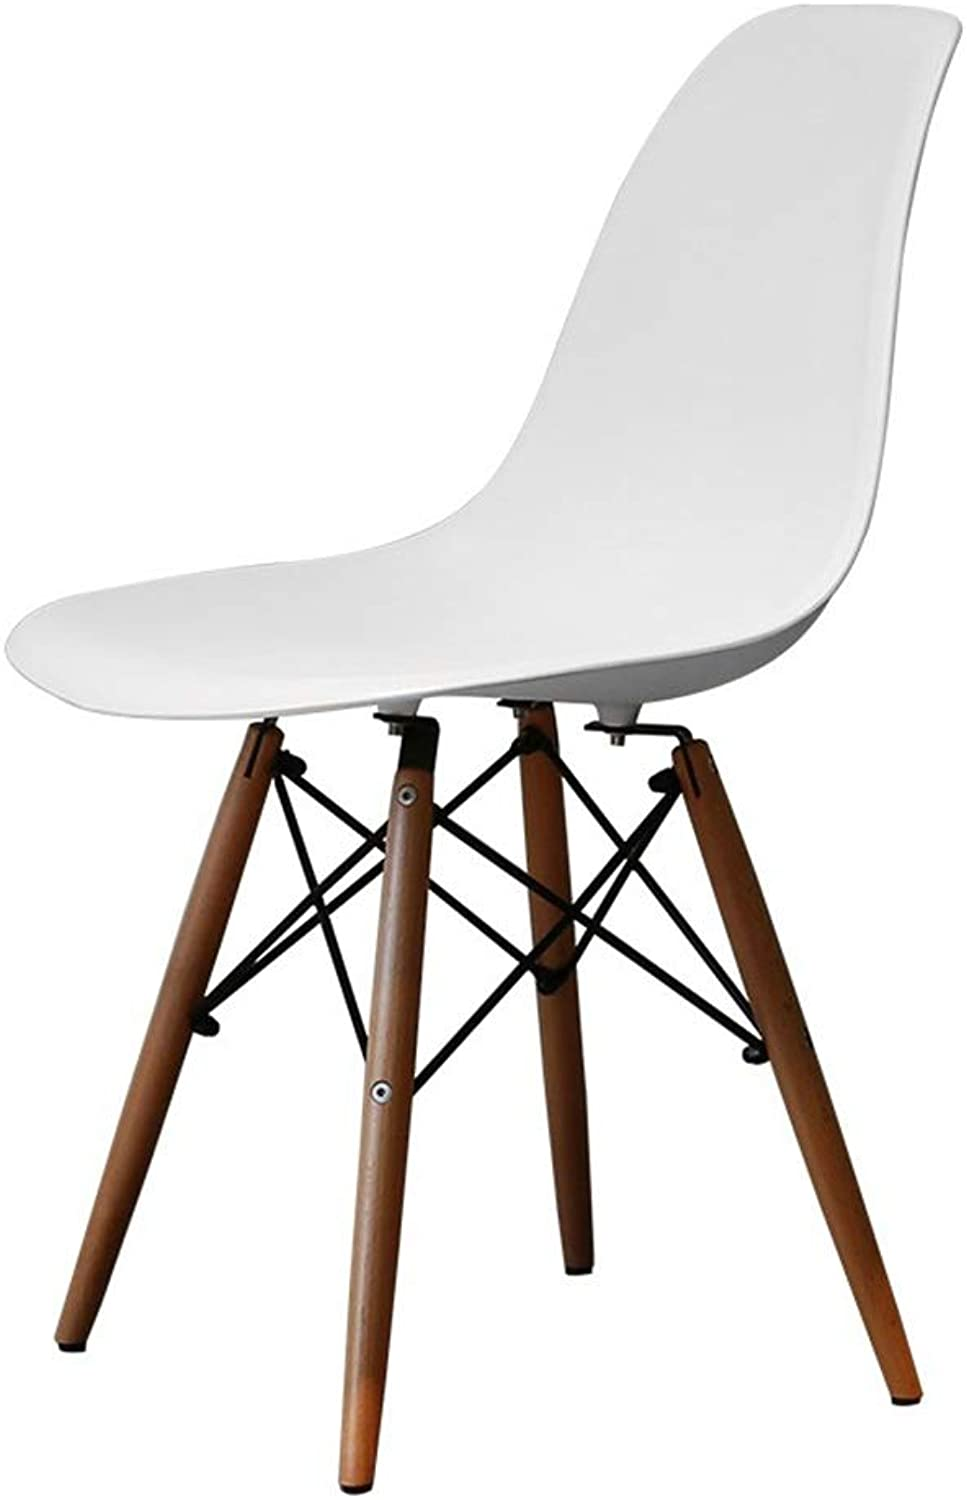 Dining Chairs Dining Chair Back Chair Stool Office Chair Leisure Chair Desk Wooden Chair Cafe Romantic Chair Can Bear 150kg (color   White, Size   46.5  58  83cm)